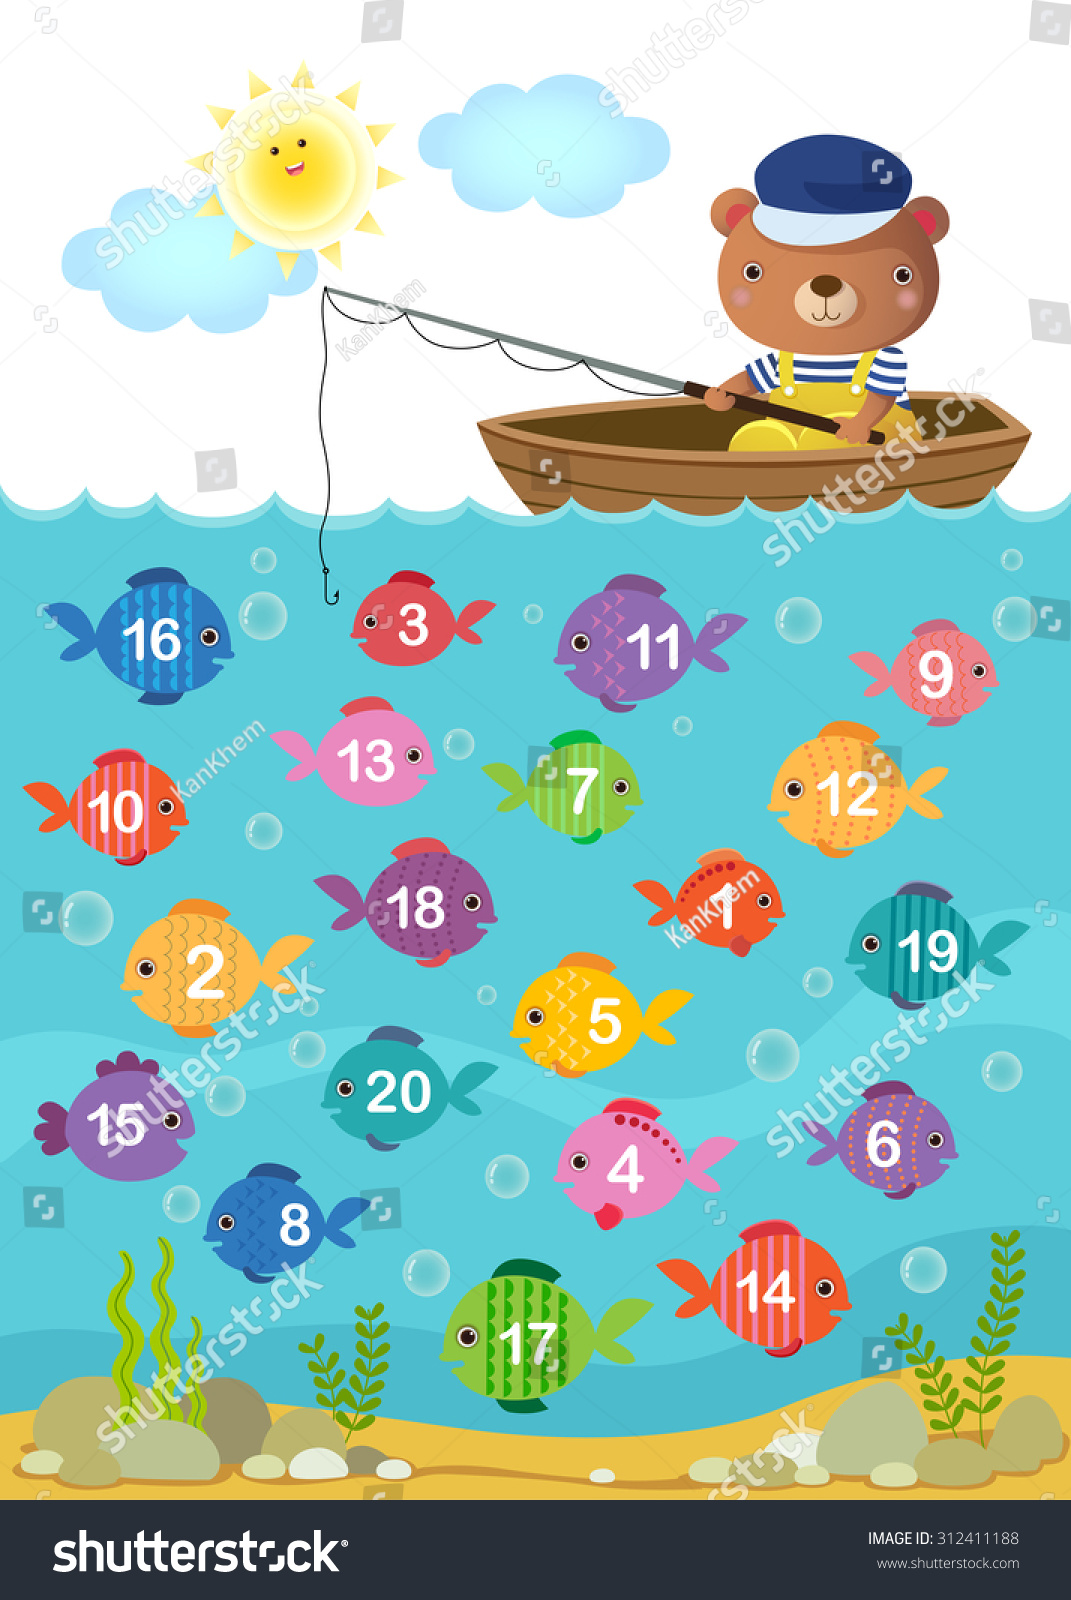 Worksheet Kindergarten Kids Learn Counting Number Stock Vector